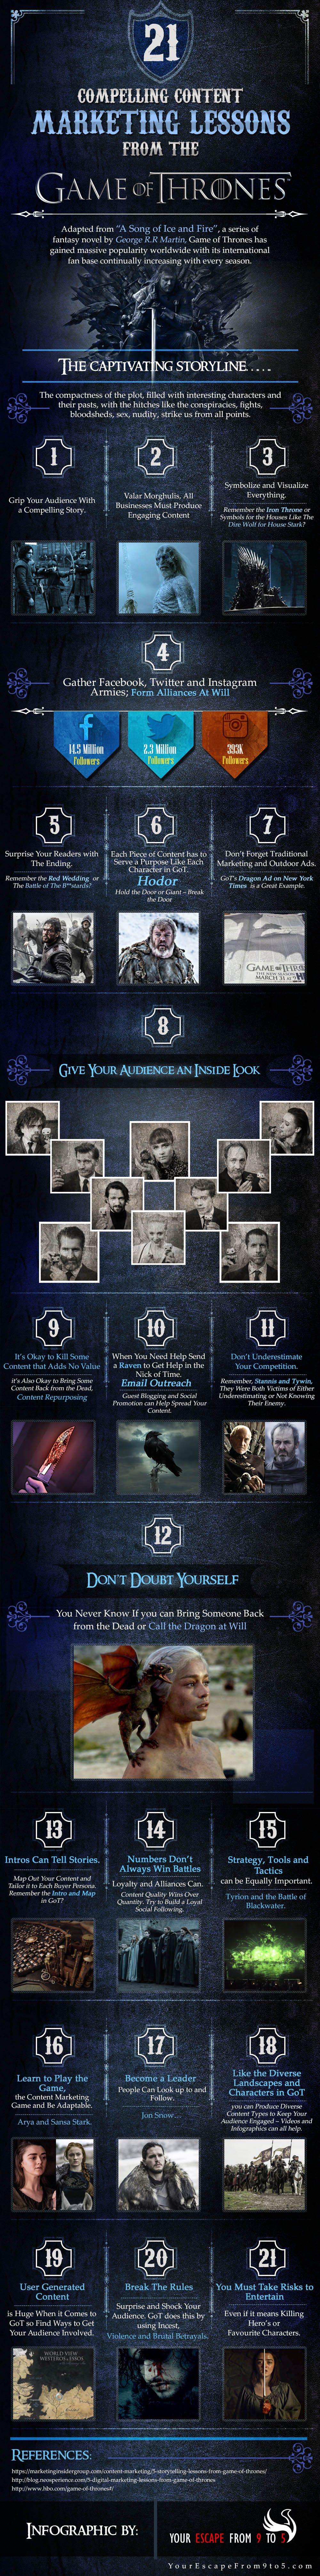 Content Marketing Lessons from the Game of Thrones #Infographic